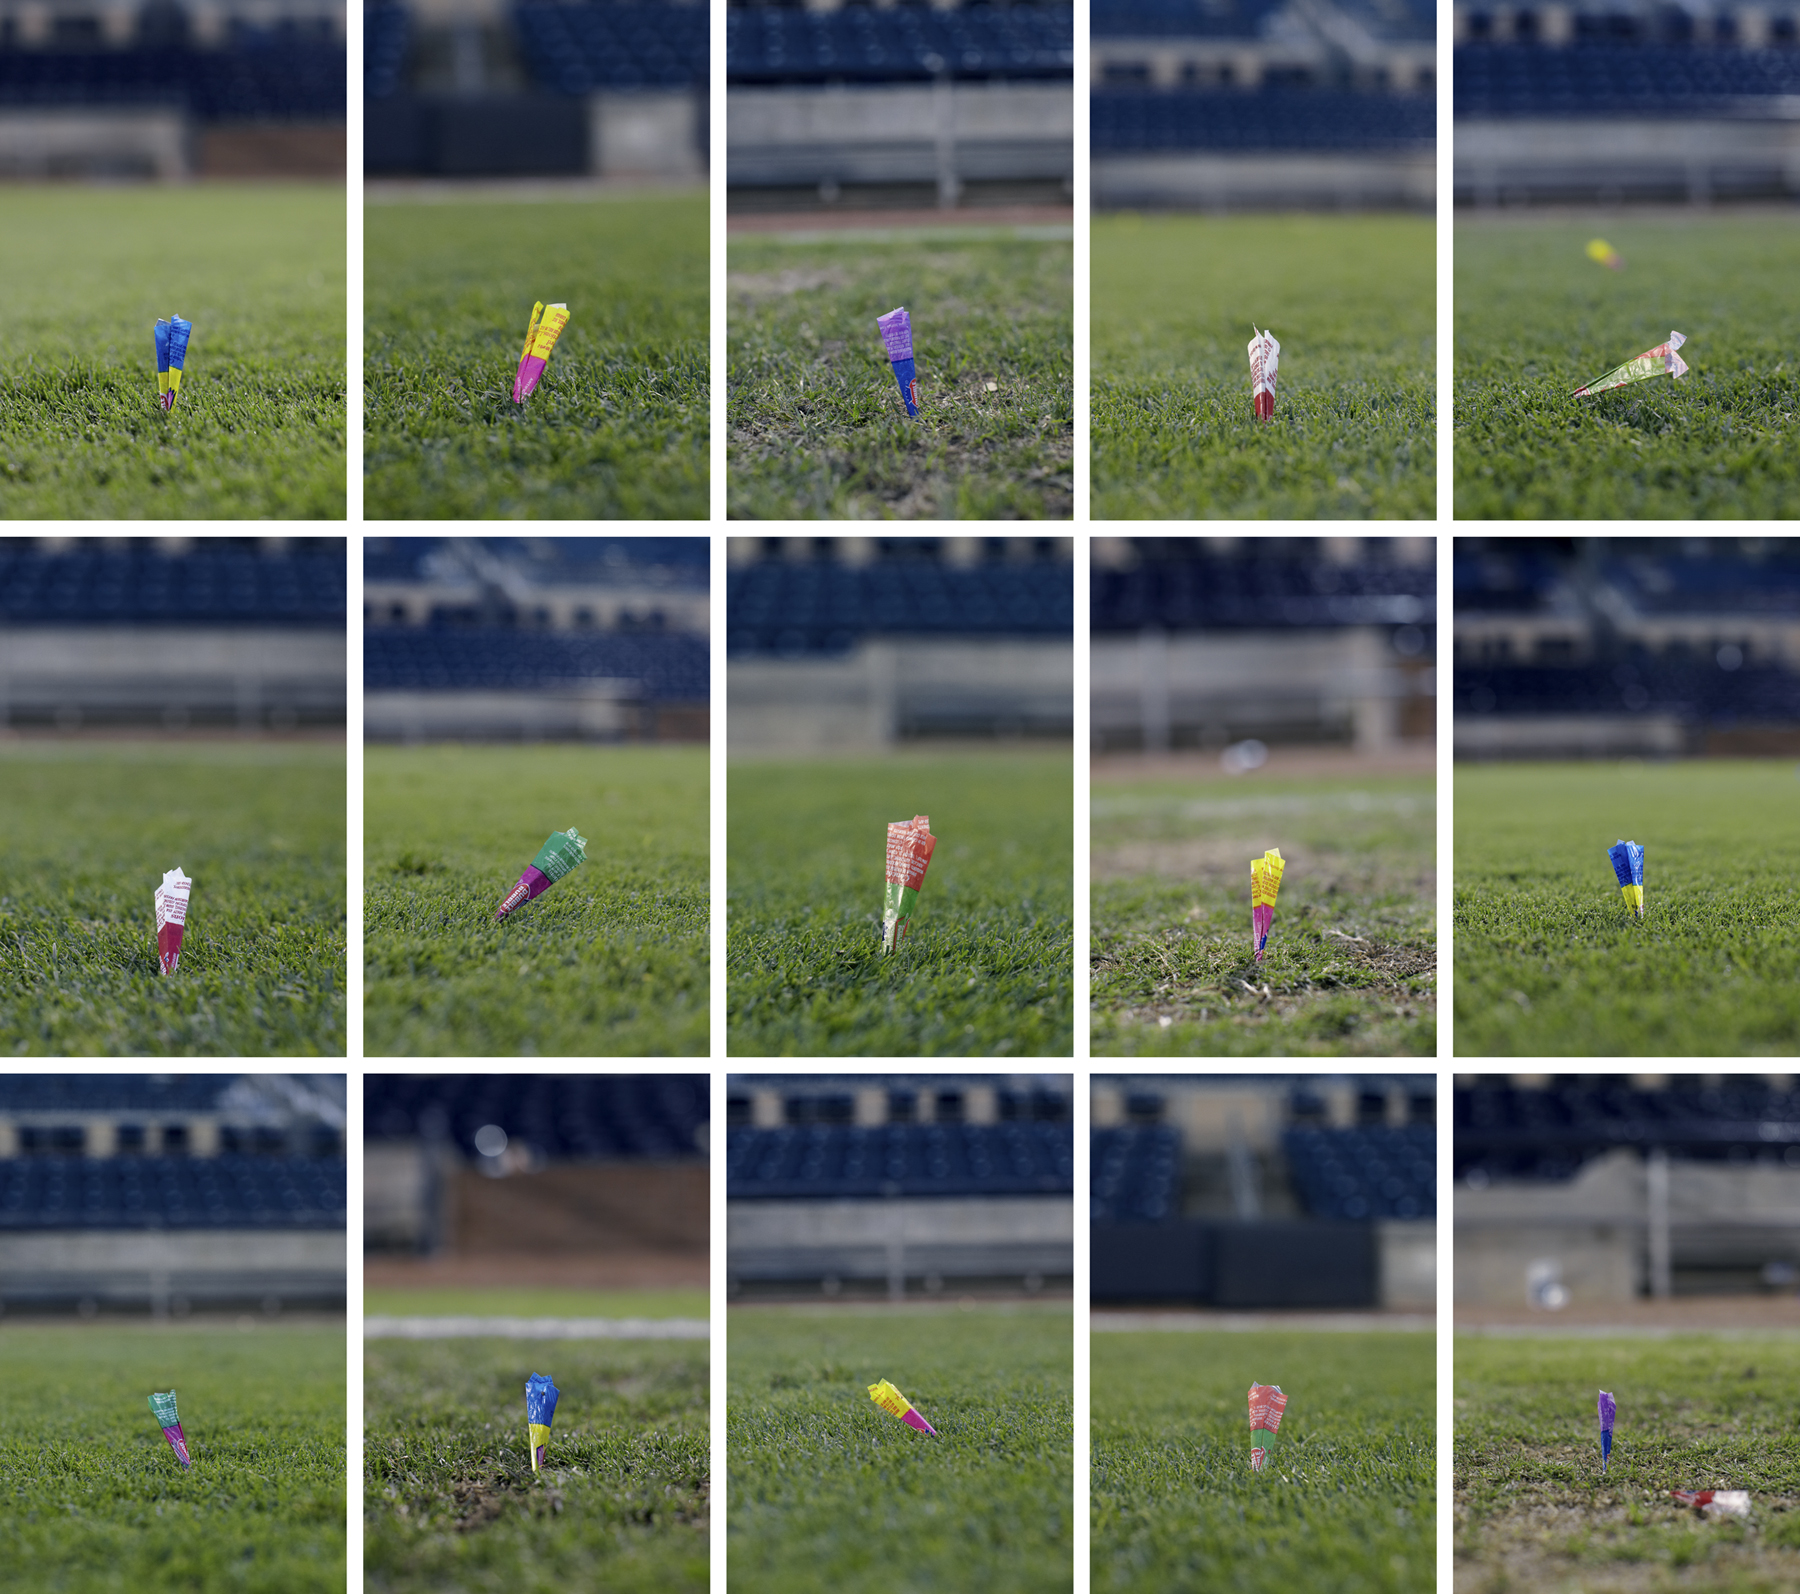 The Field of Play, 2013   Archival inkjet print  42 1/2 x 49 inches  Edition of 8  $6,000  CONTACT Rick Wester Fine Art